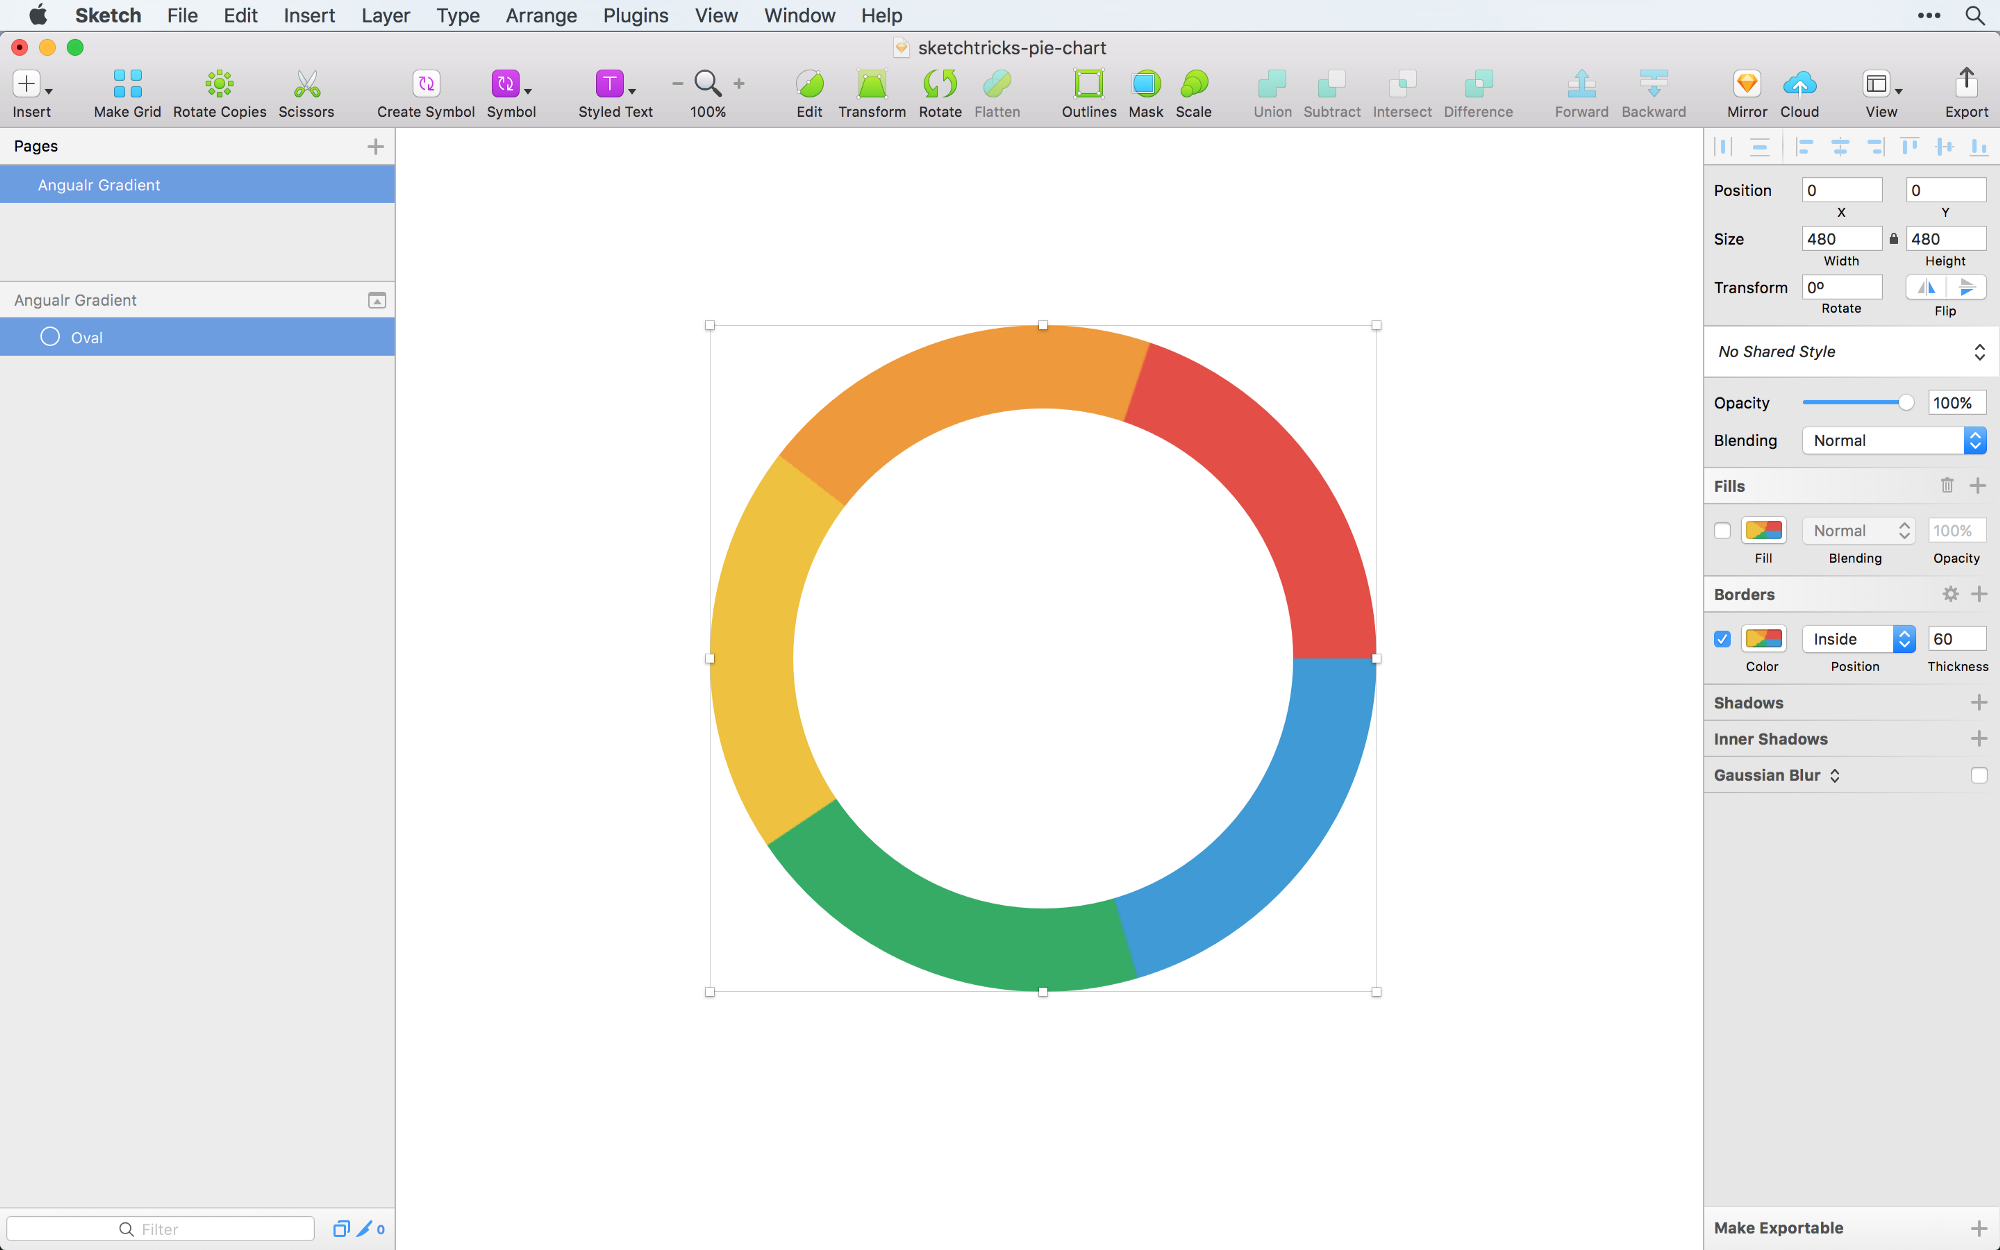 Creating a pie chart in sketch the right way sketch tricks medium until recently the angular gradient method was the only one with the full control over a pie chart sketchy pies plugin only allowed to insert equal slices nvjuhfo Image collections